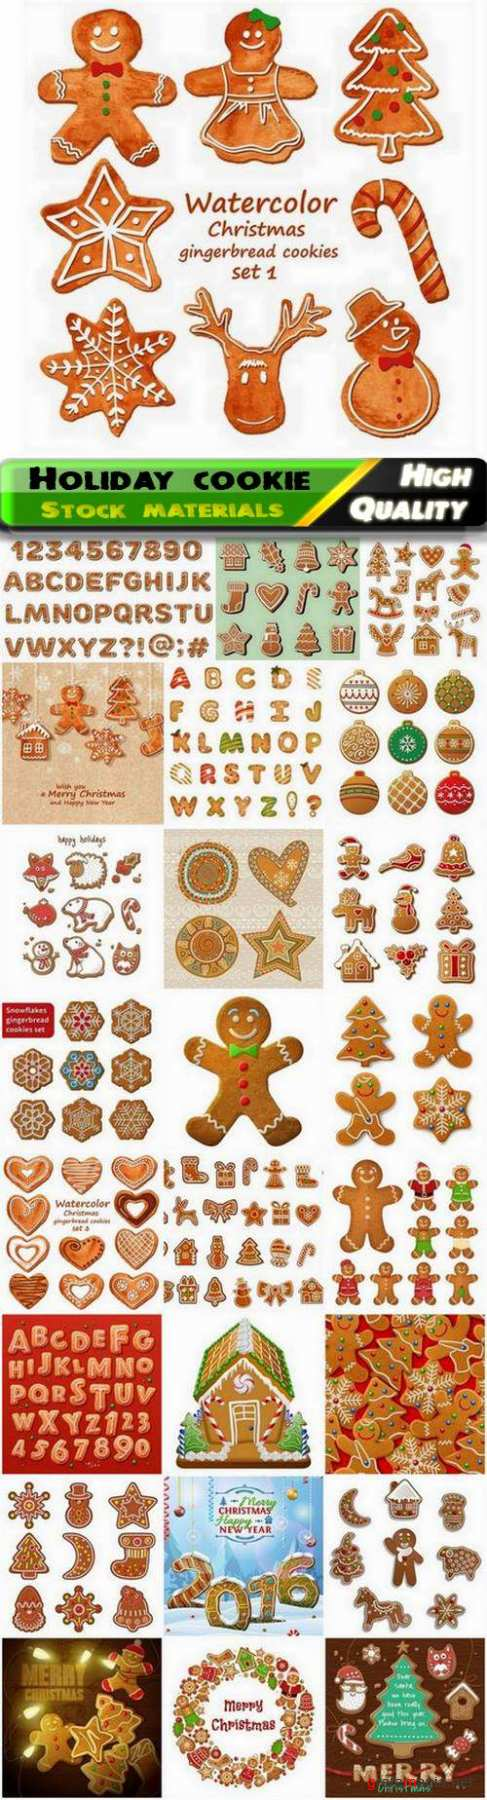 New Year and Christmas holiday sweet cookie with glaze - 25 Eps